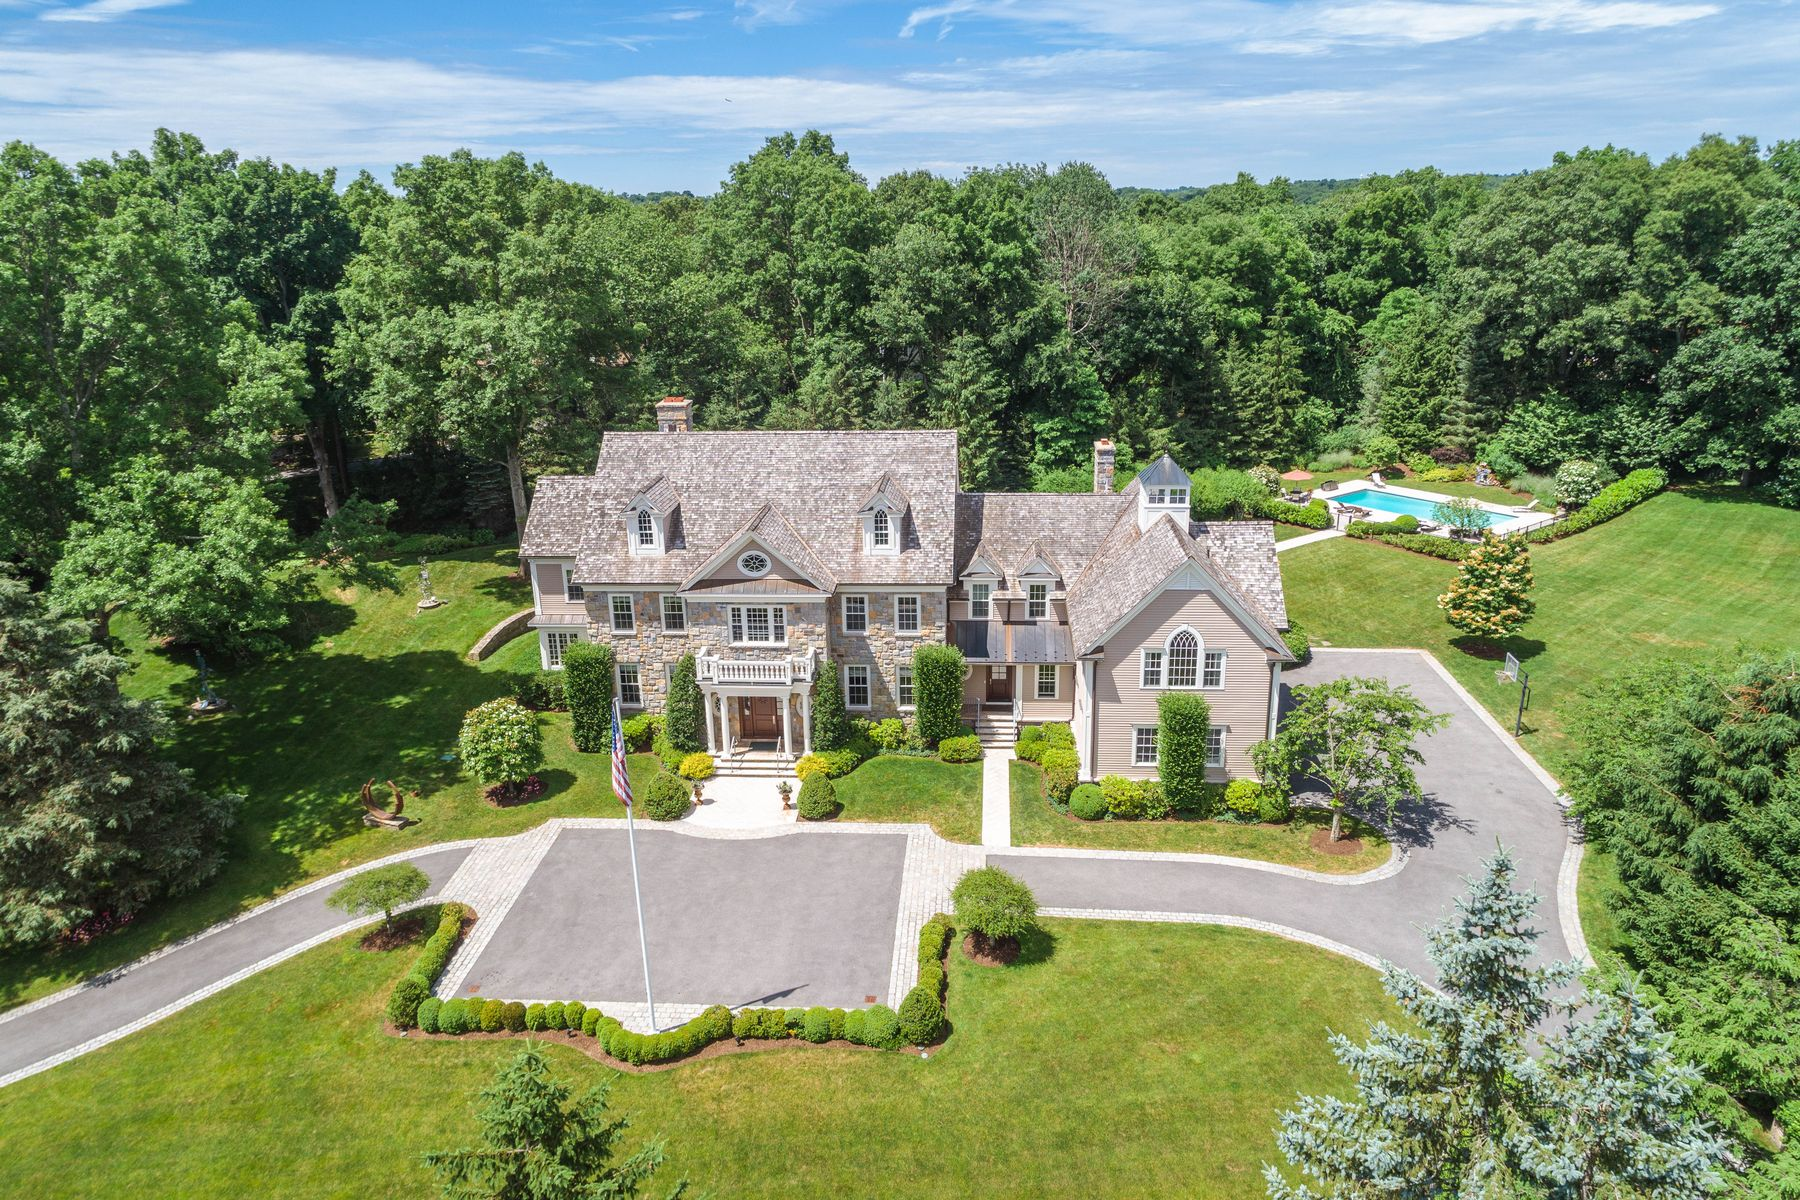 Single Family Home for Sale at 25 Orchard Hill Lane 25 Orchard Hill Lane Greenwich, Connecticut 06831 United States